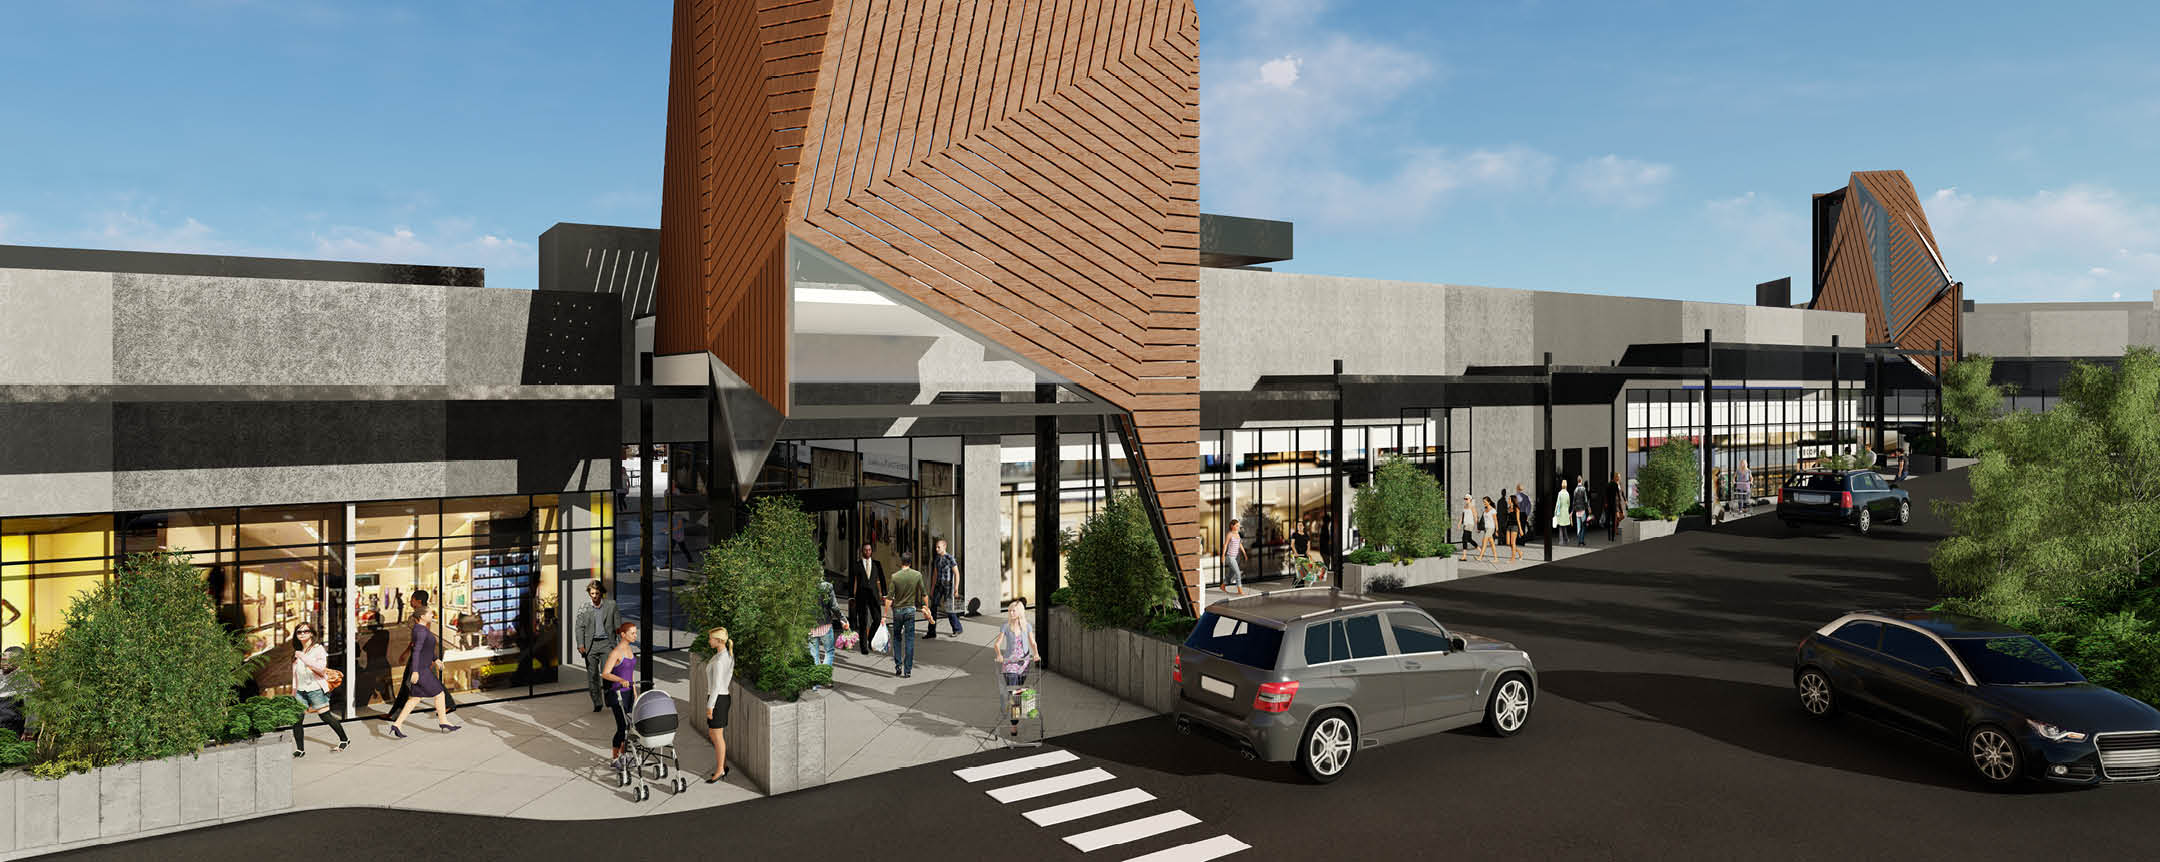 Lake-Macquarie-Fair-Redevelopment_1080x431-2